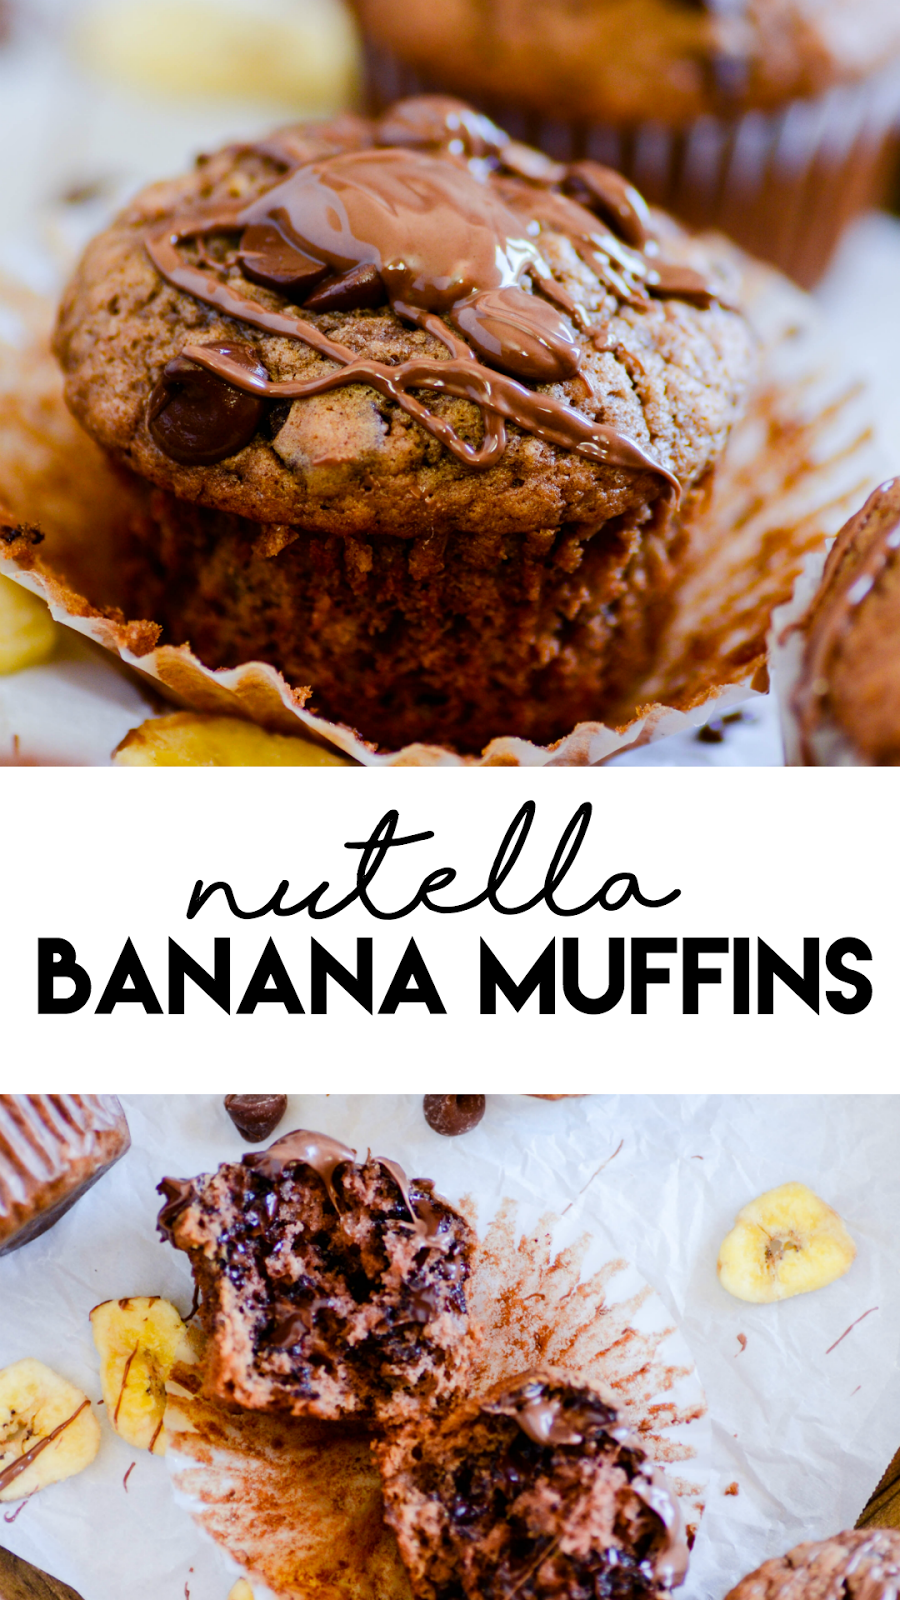 A recipe for the most decadent banana bread you've ever eaten. Nutella and bananas were meant to be!